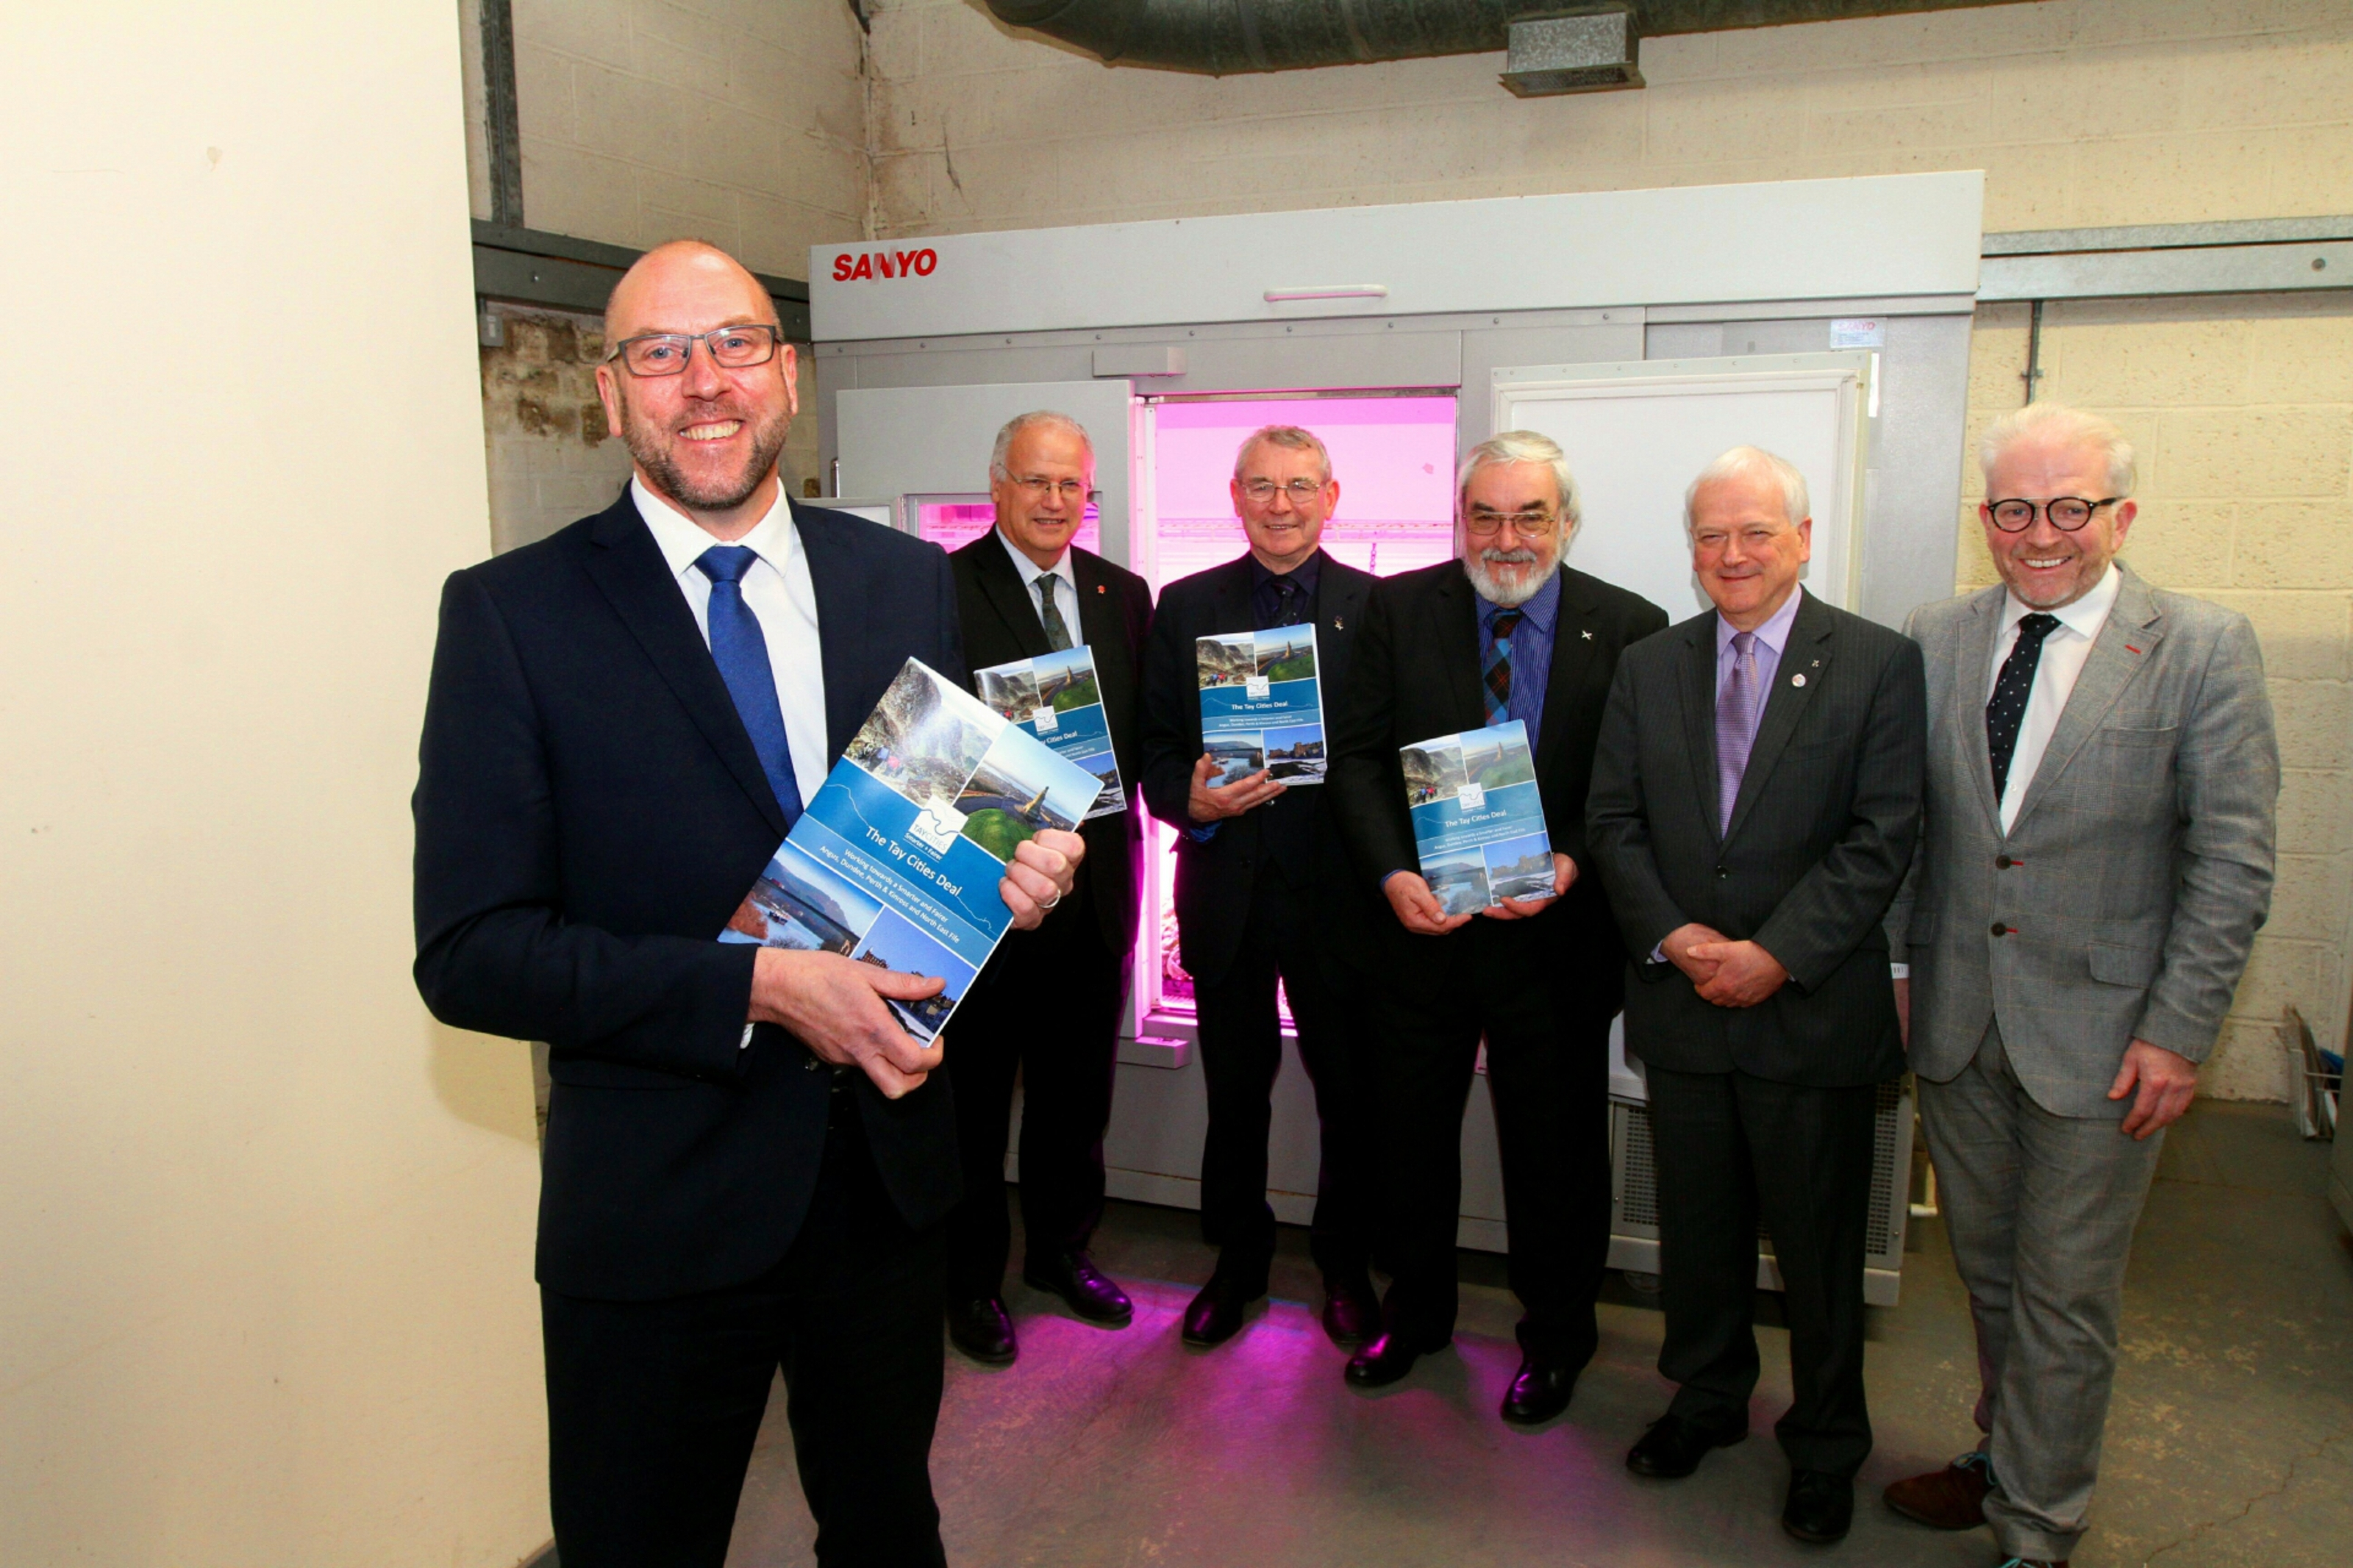 David Littlejohn, head of the Tay Cities Deal at the James Hutton Institute where the Submission document was launched, with David Ross of Fife Council, Ken Guild Dundee City council, Iain Gaul of Angus council , Ian Miller of Perth and Kinross,and Ellis Watson of DC Thomson.